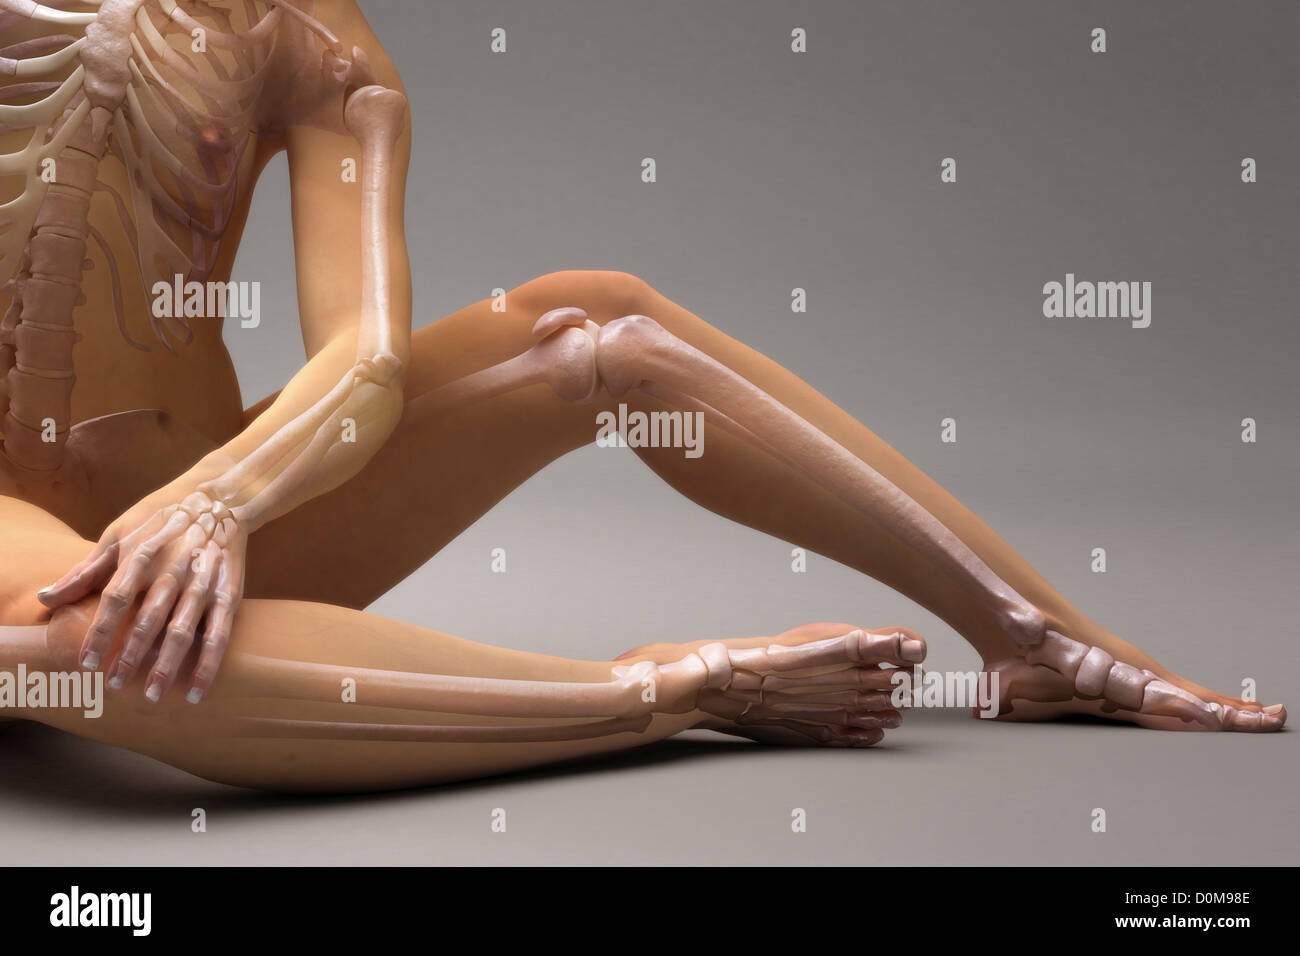 Sitting posed female with the bones of the skeleton visible. - Stock Image